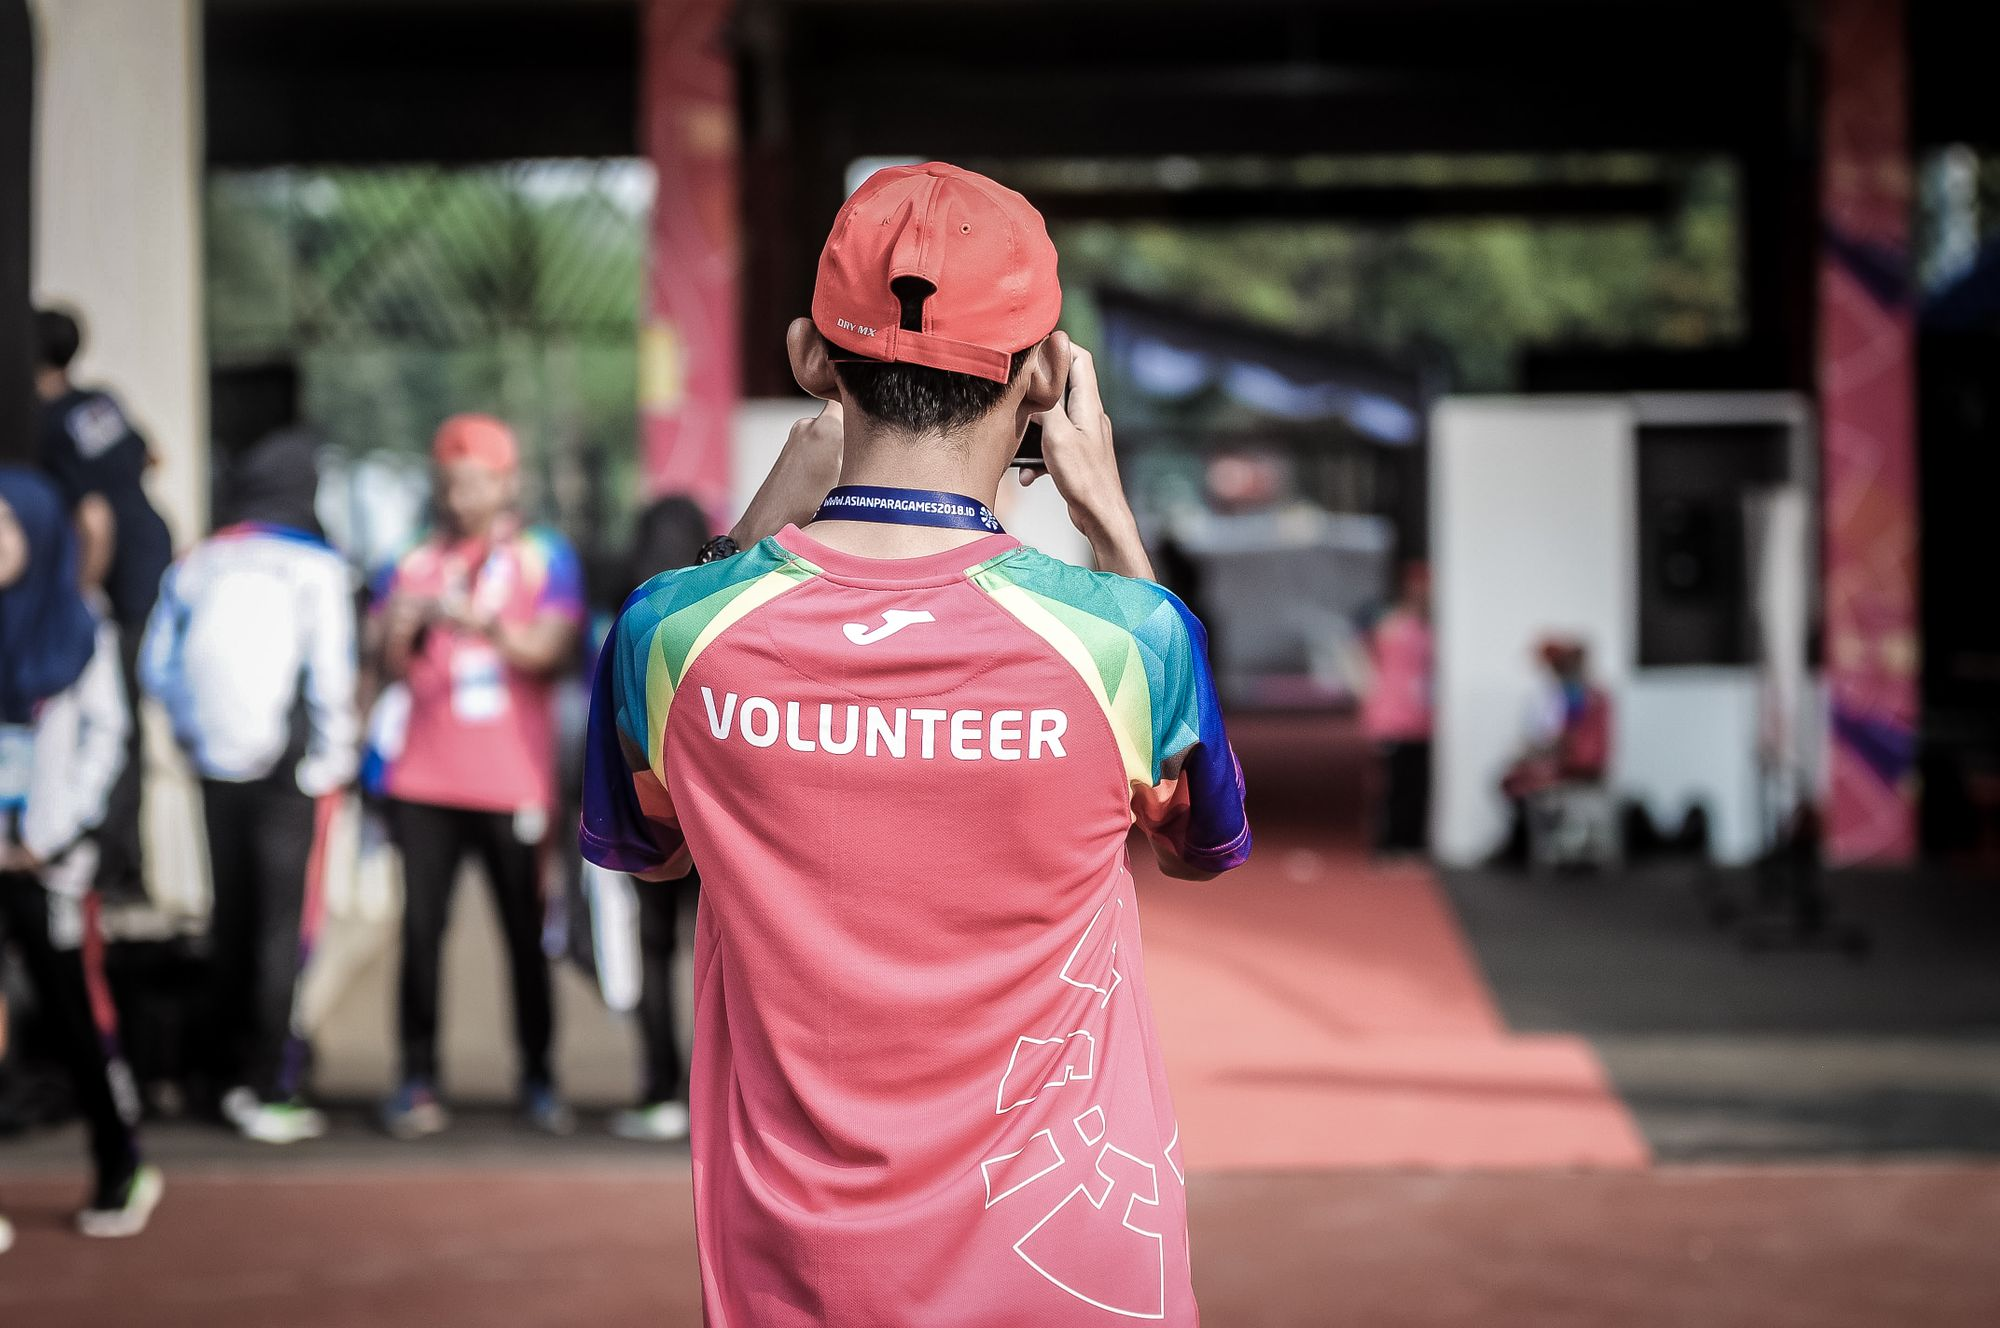 Jobs that boost Volunteer Participation